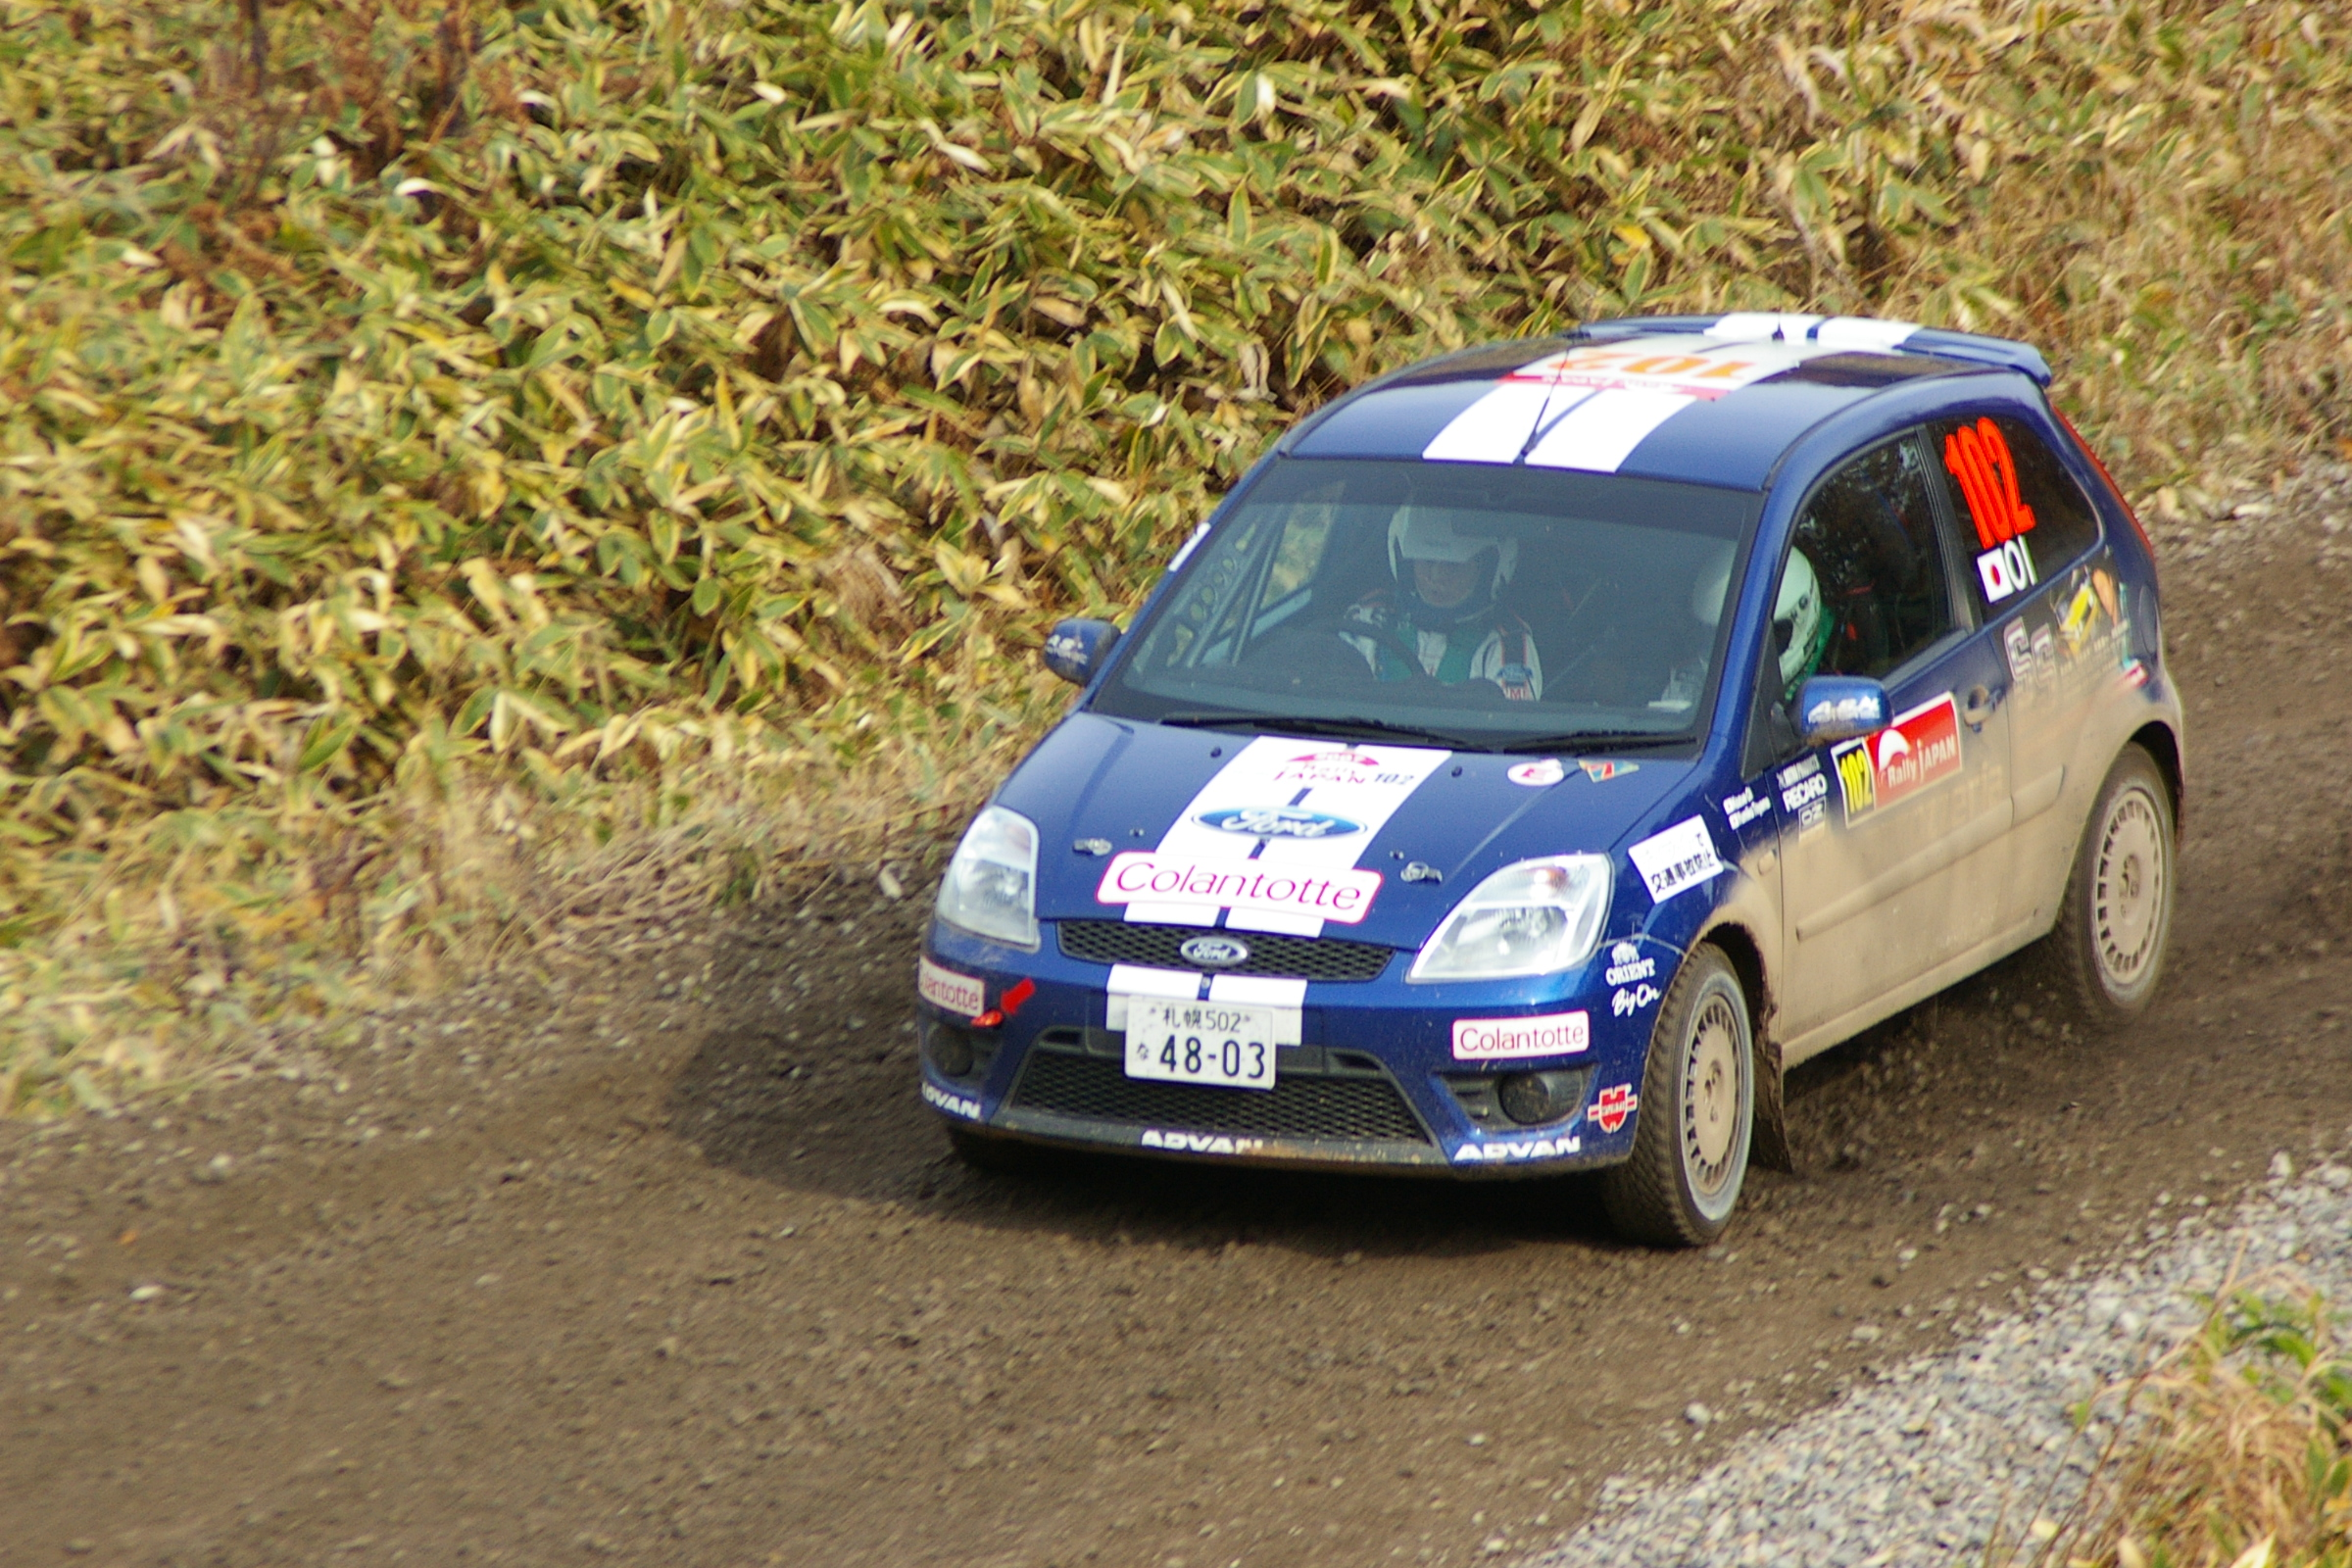 Ford Fiesta Rally car Group N